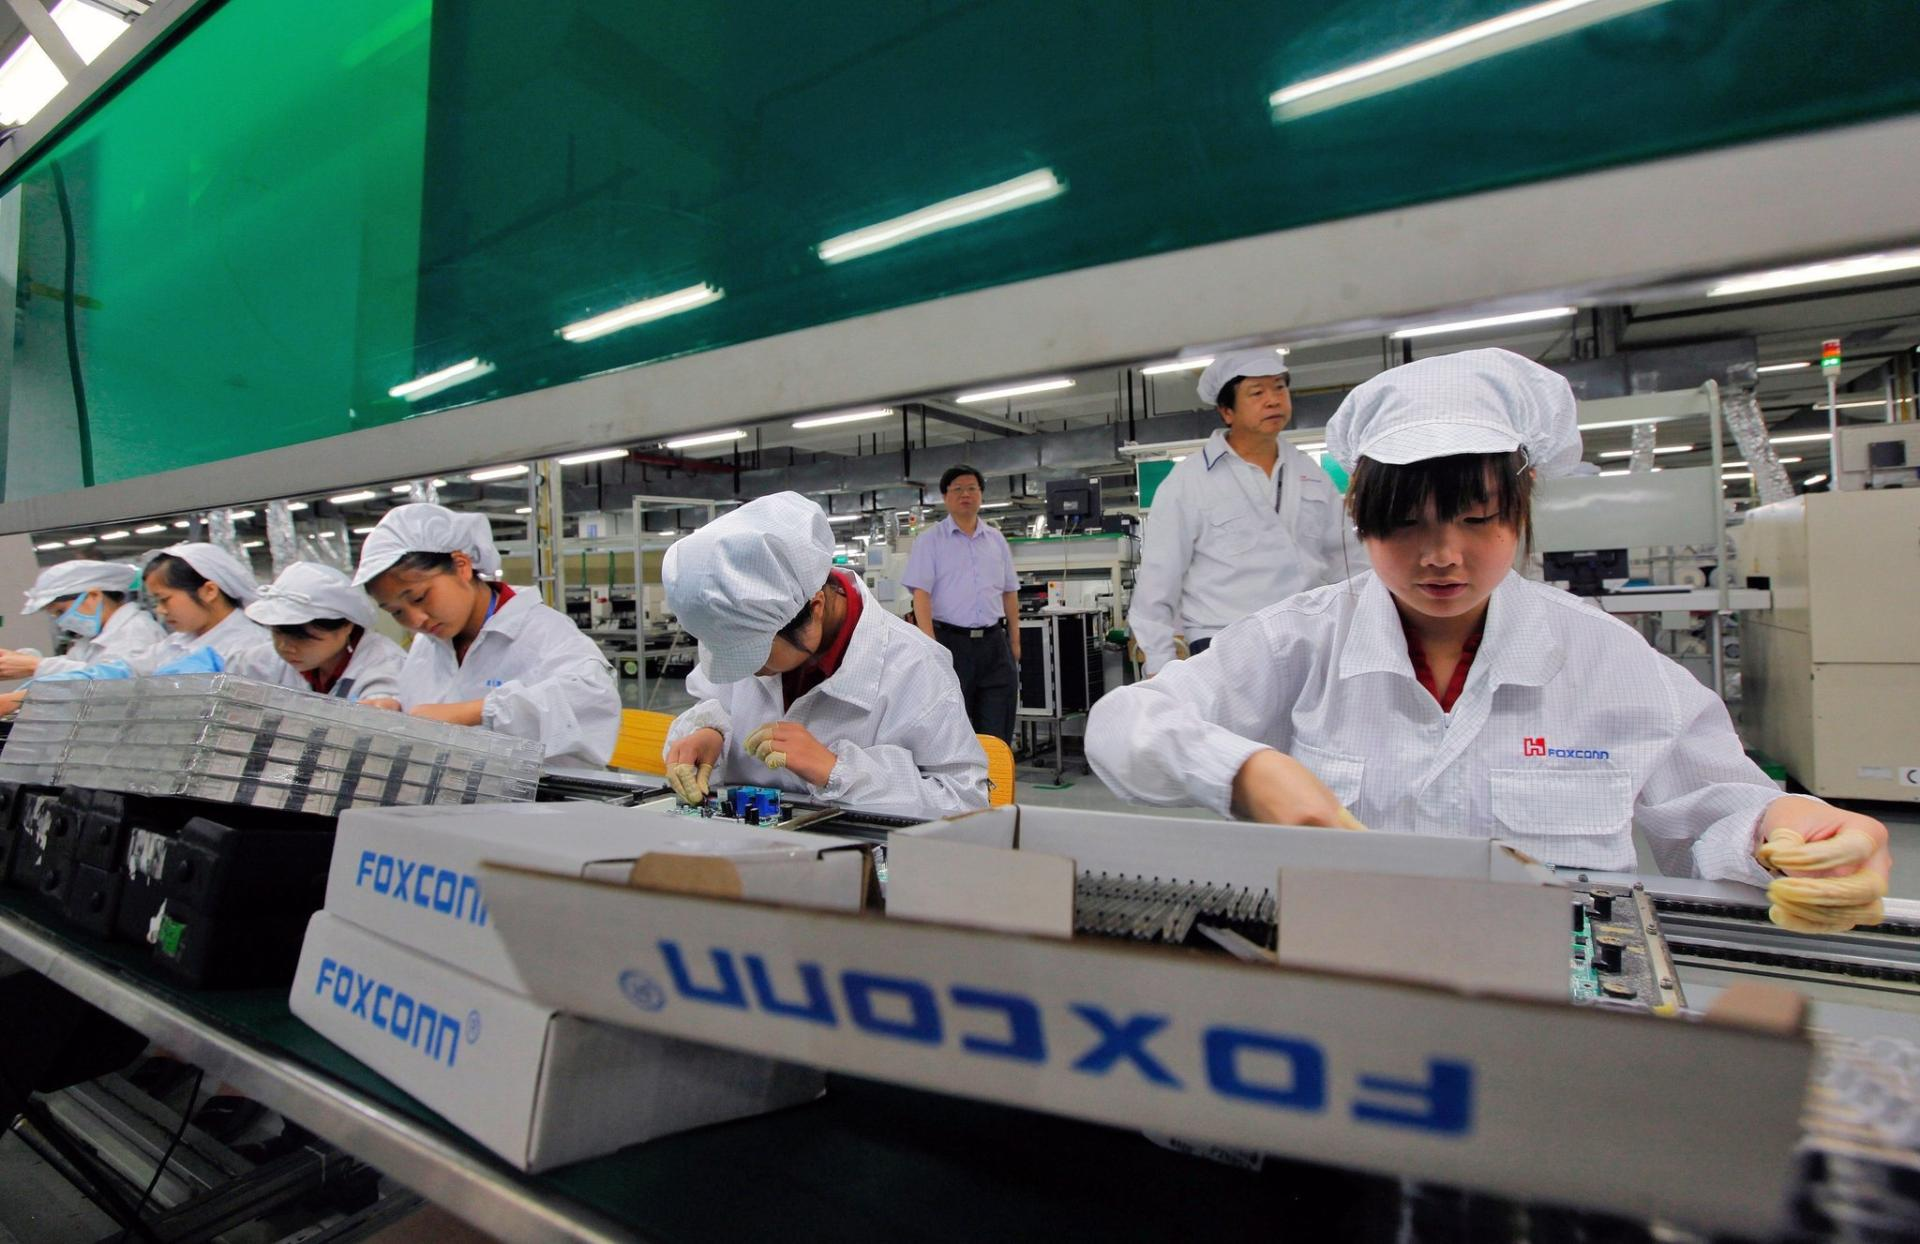 Foxconn reported the lowest quarterly profit in 20 years, but expects to return to stable growth already this quarter